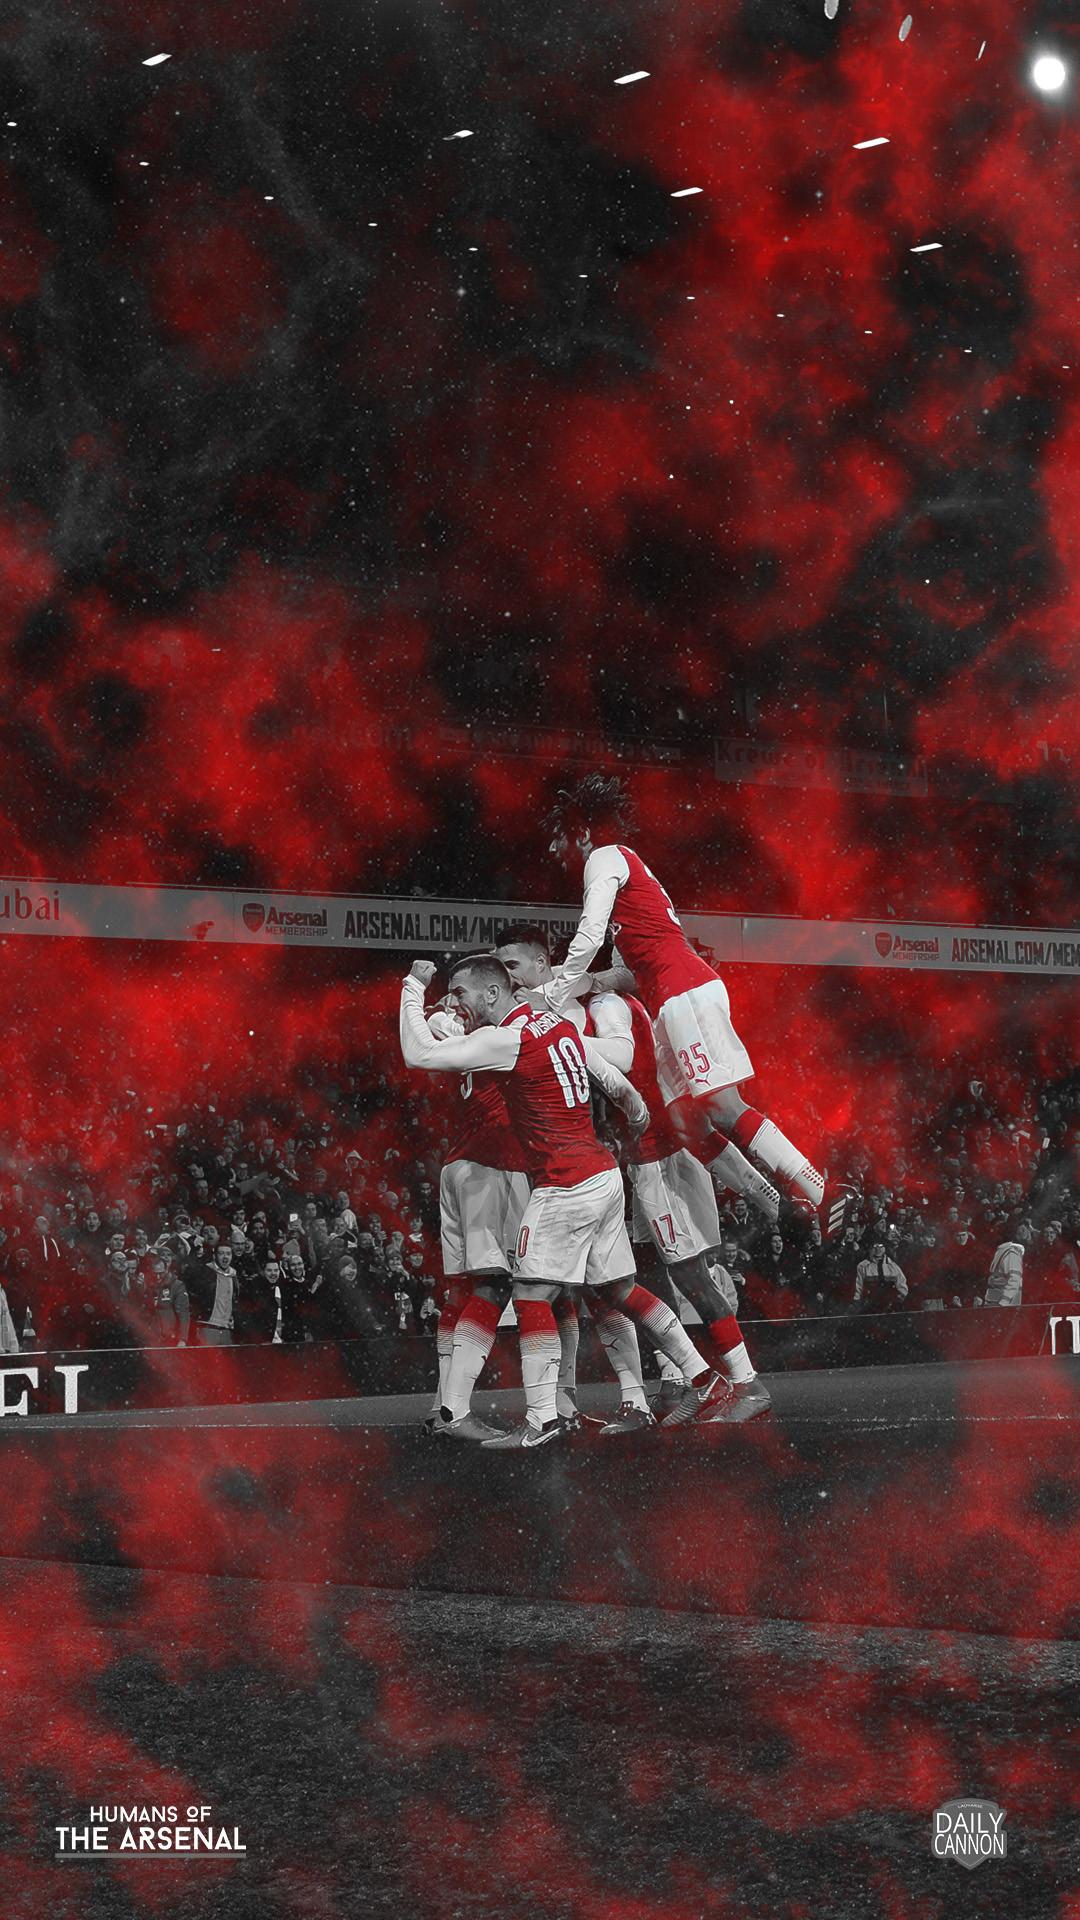 Amazing Arsenal phone wallpapers collaboration with Humans Of The